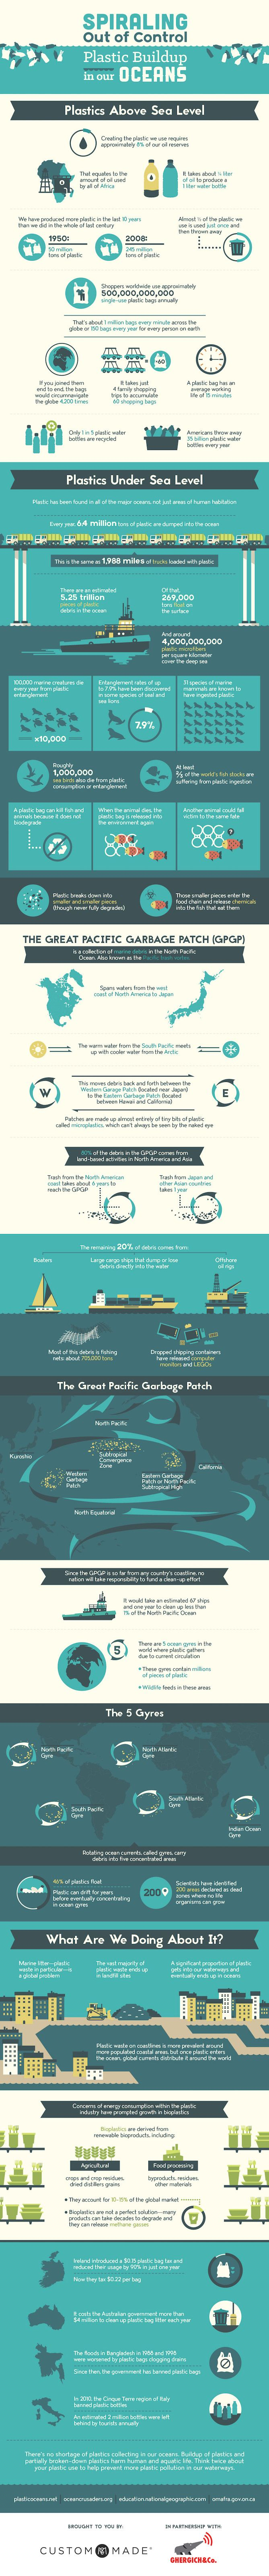 Spiraling Out of Control: The Plastic Buildup in Our Oceans [Infographic], via @HubSpot #infographics #dataviz #datavisualization